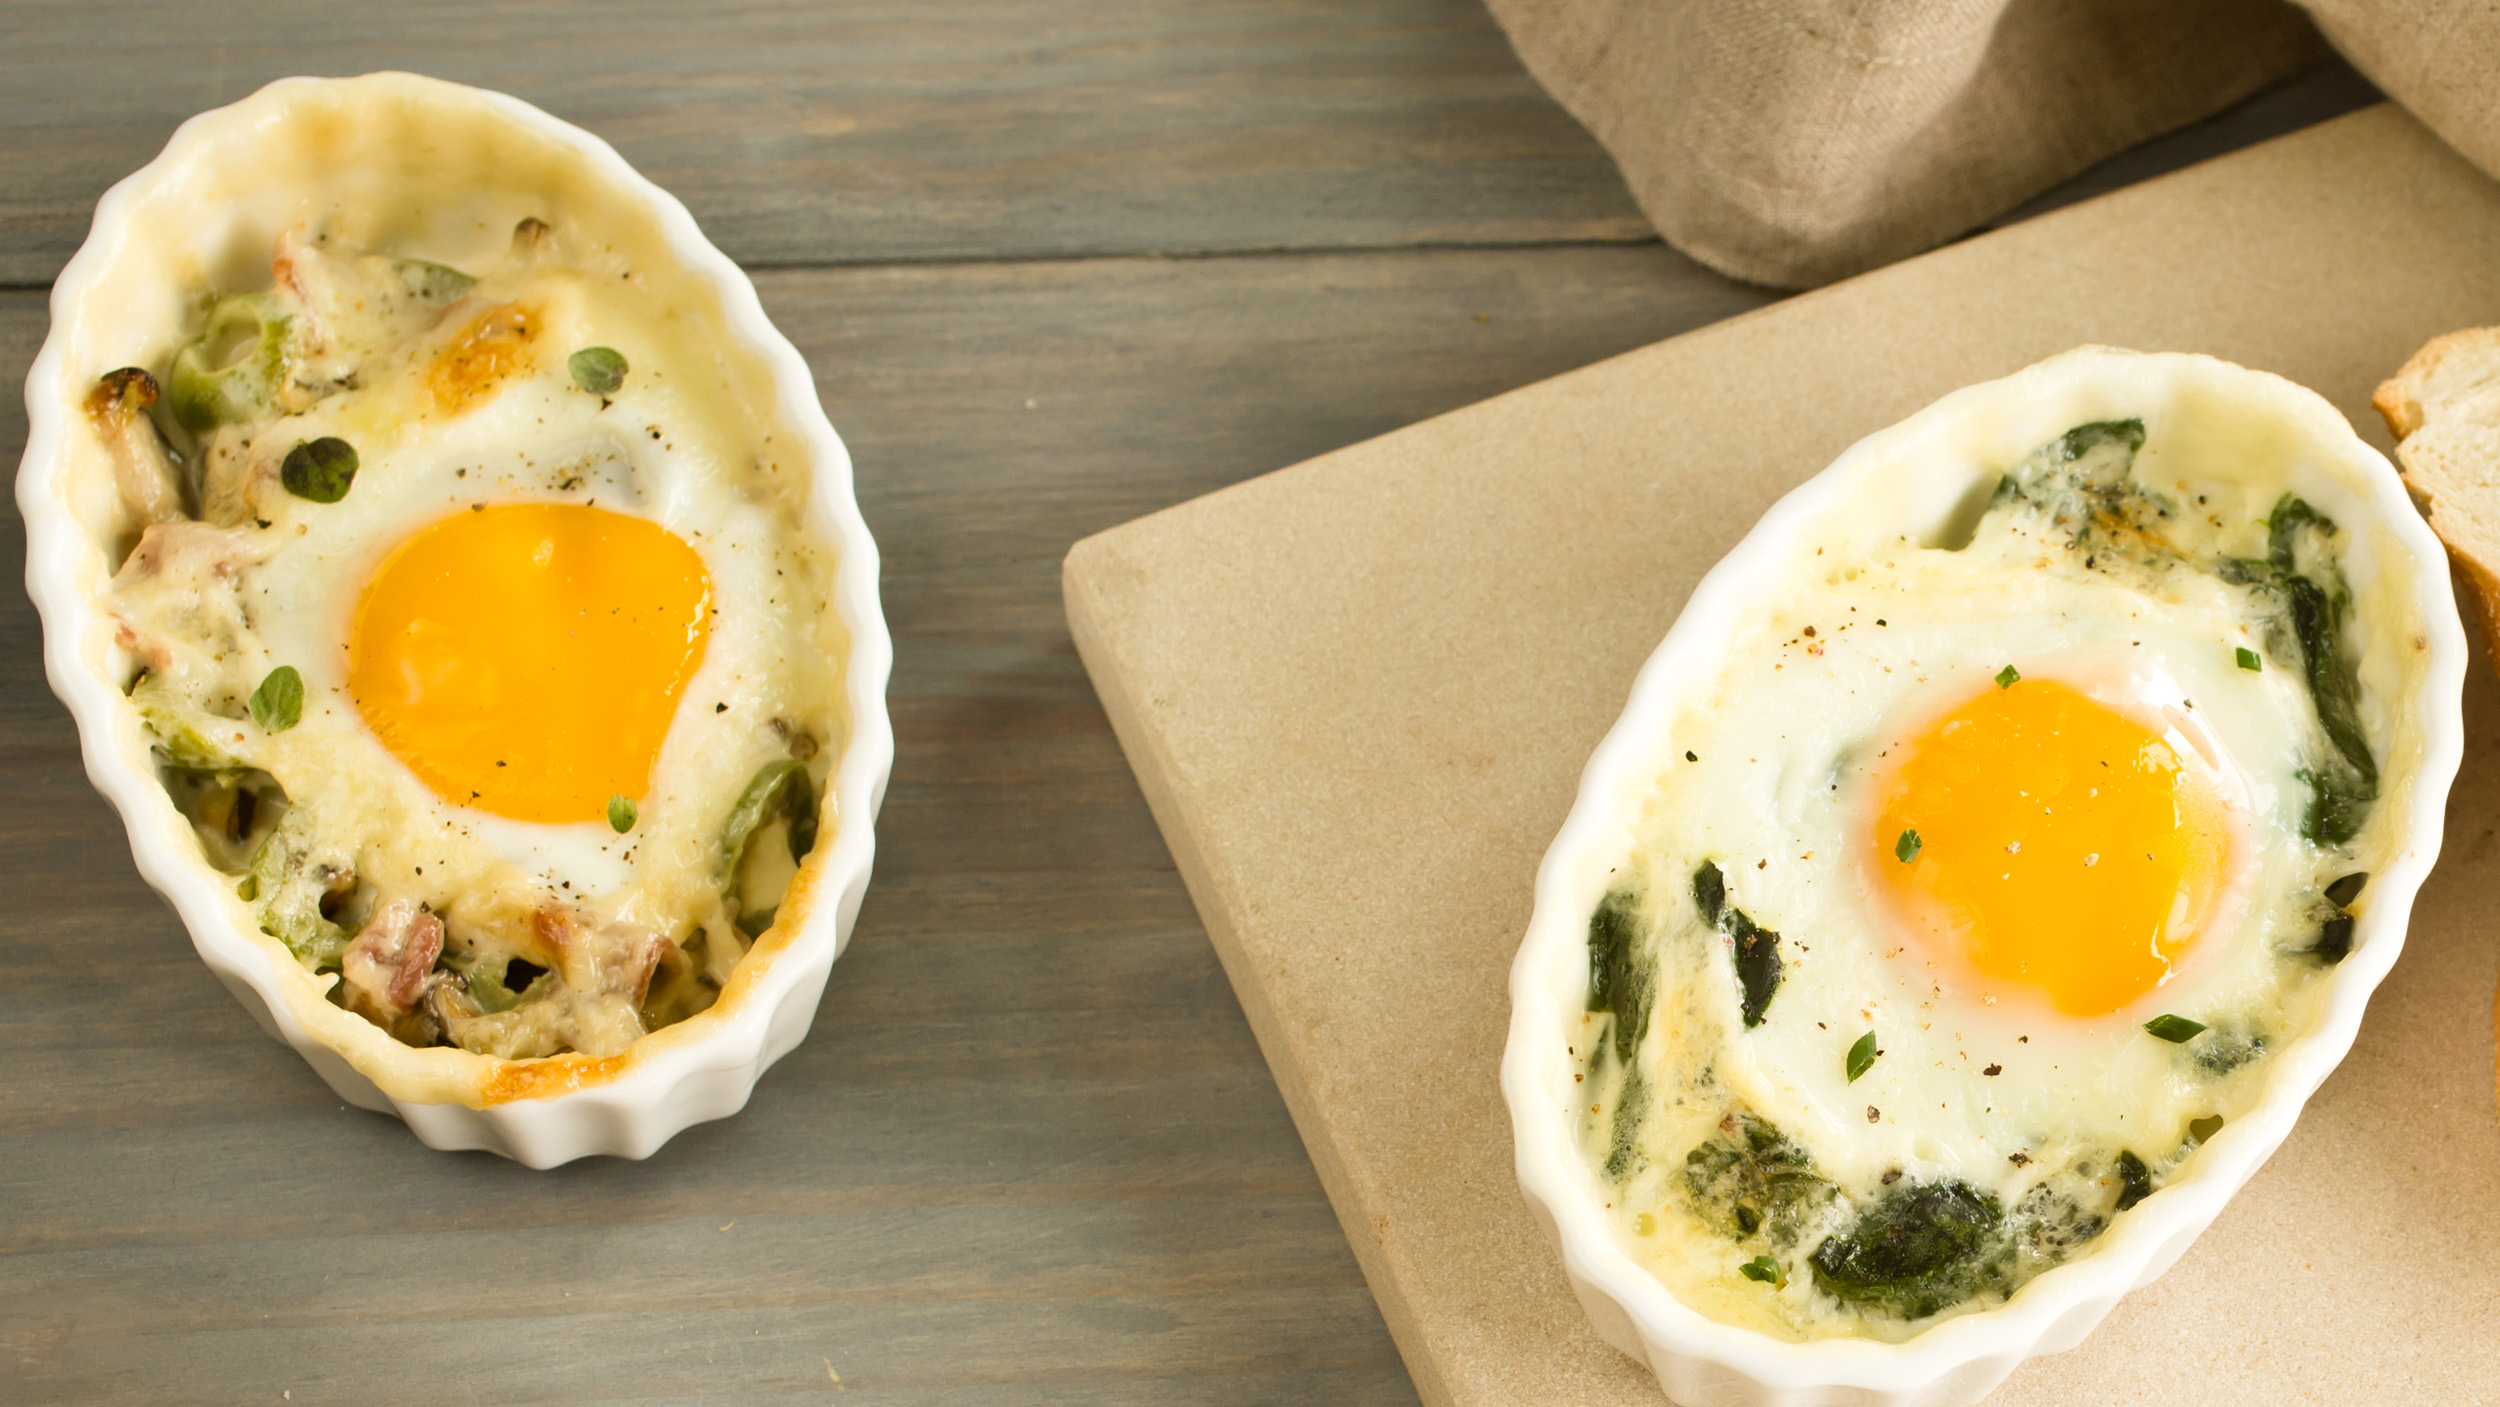 Creamy Baked Eggs with Leeks and Spinach - TODAY.com